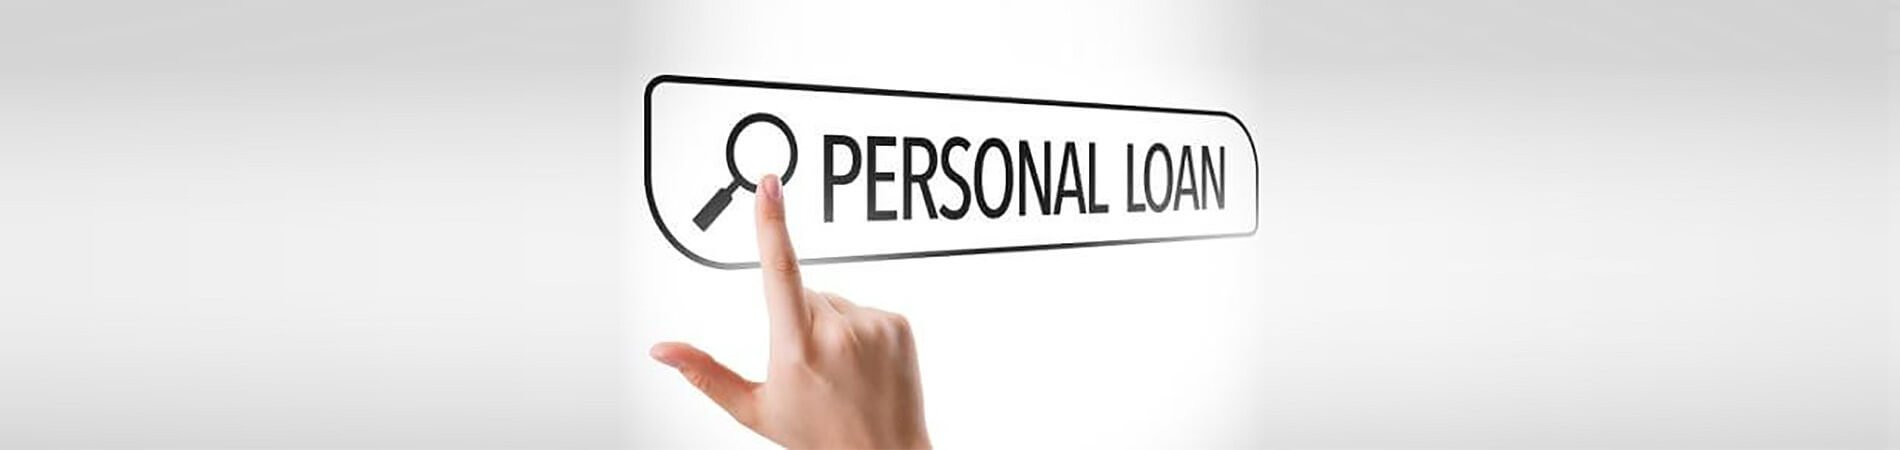 Find Personal Loans in Los Angeles